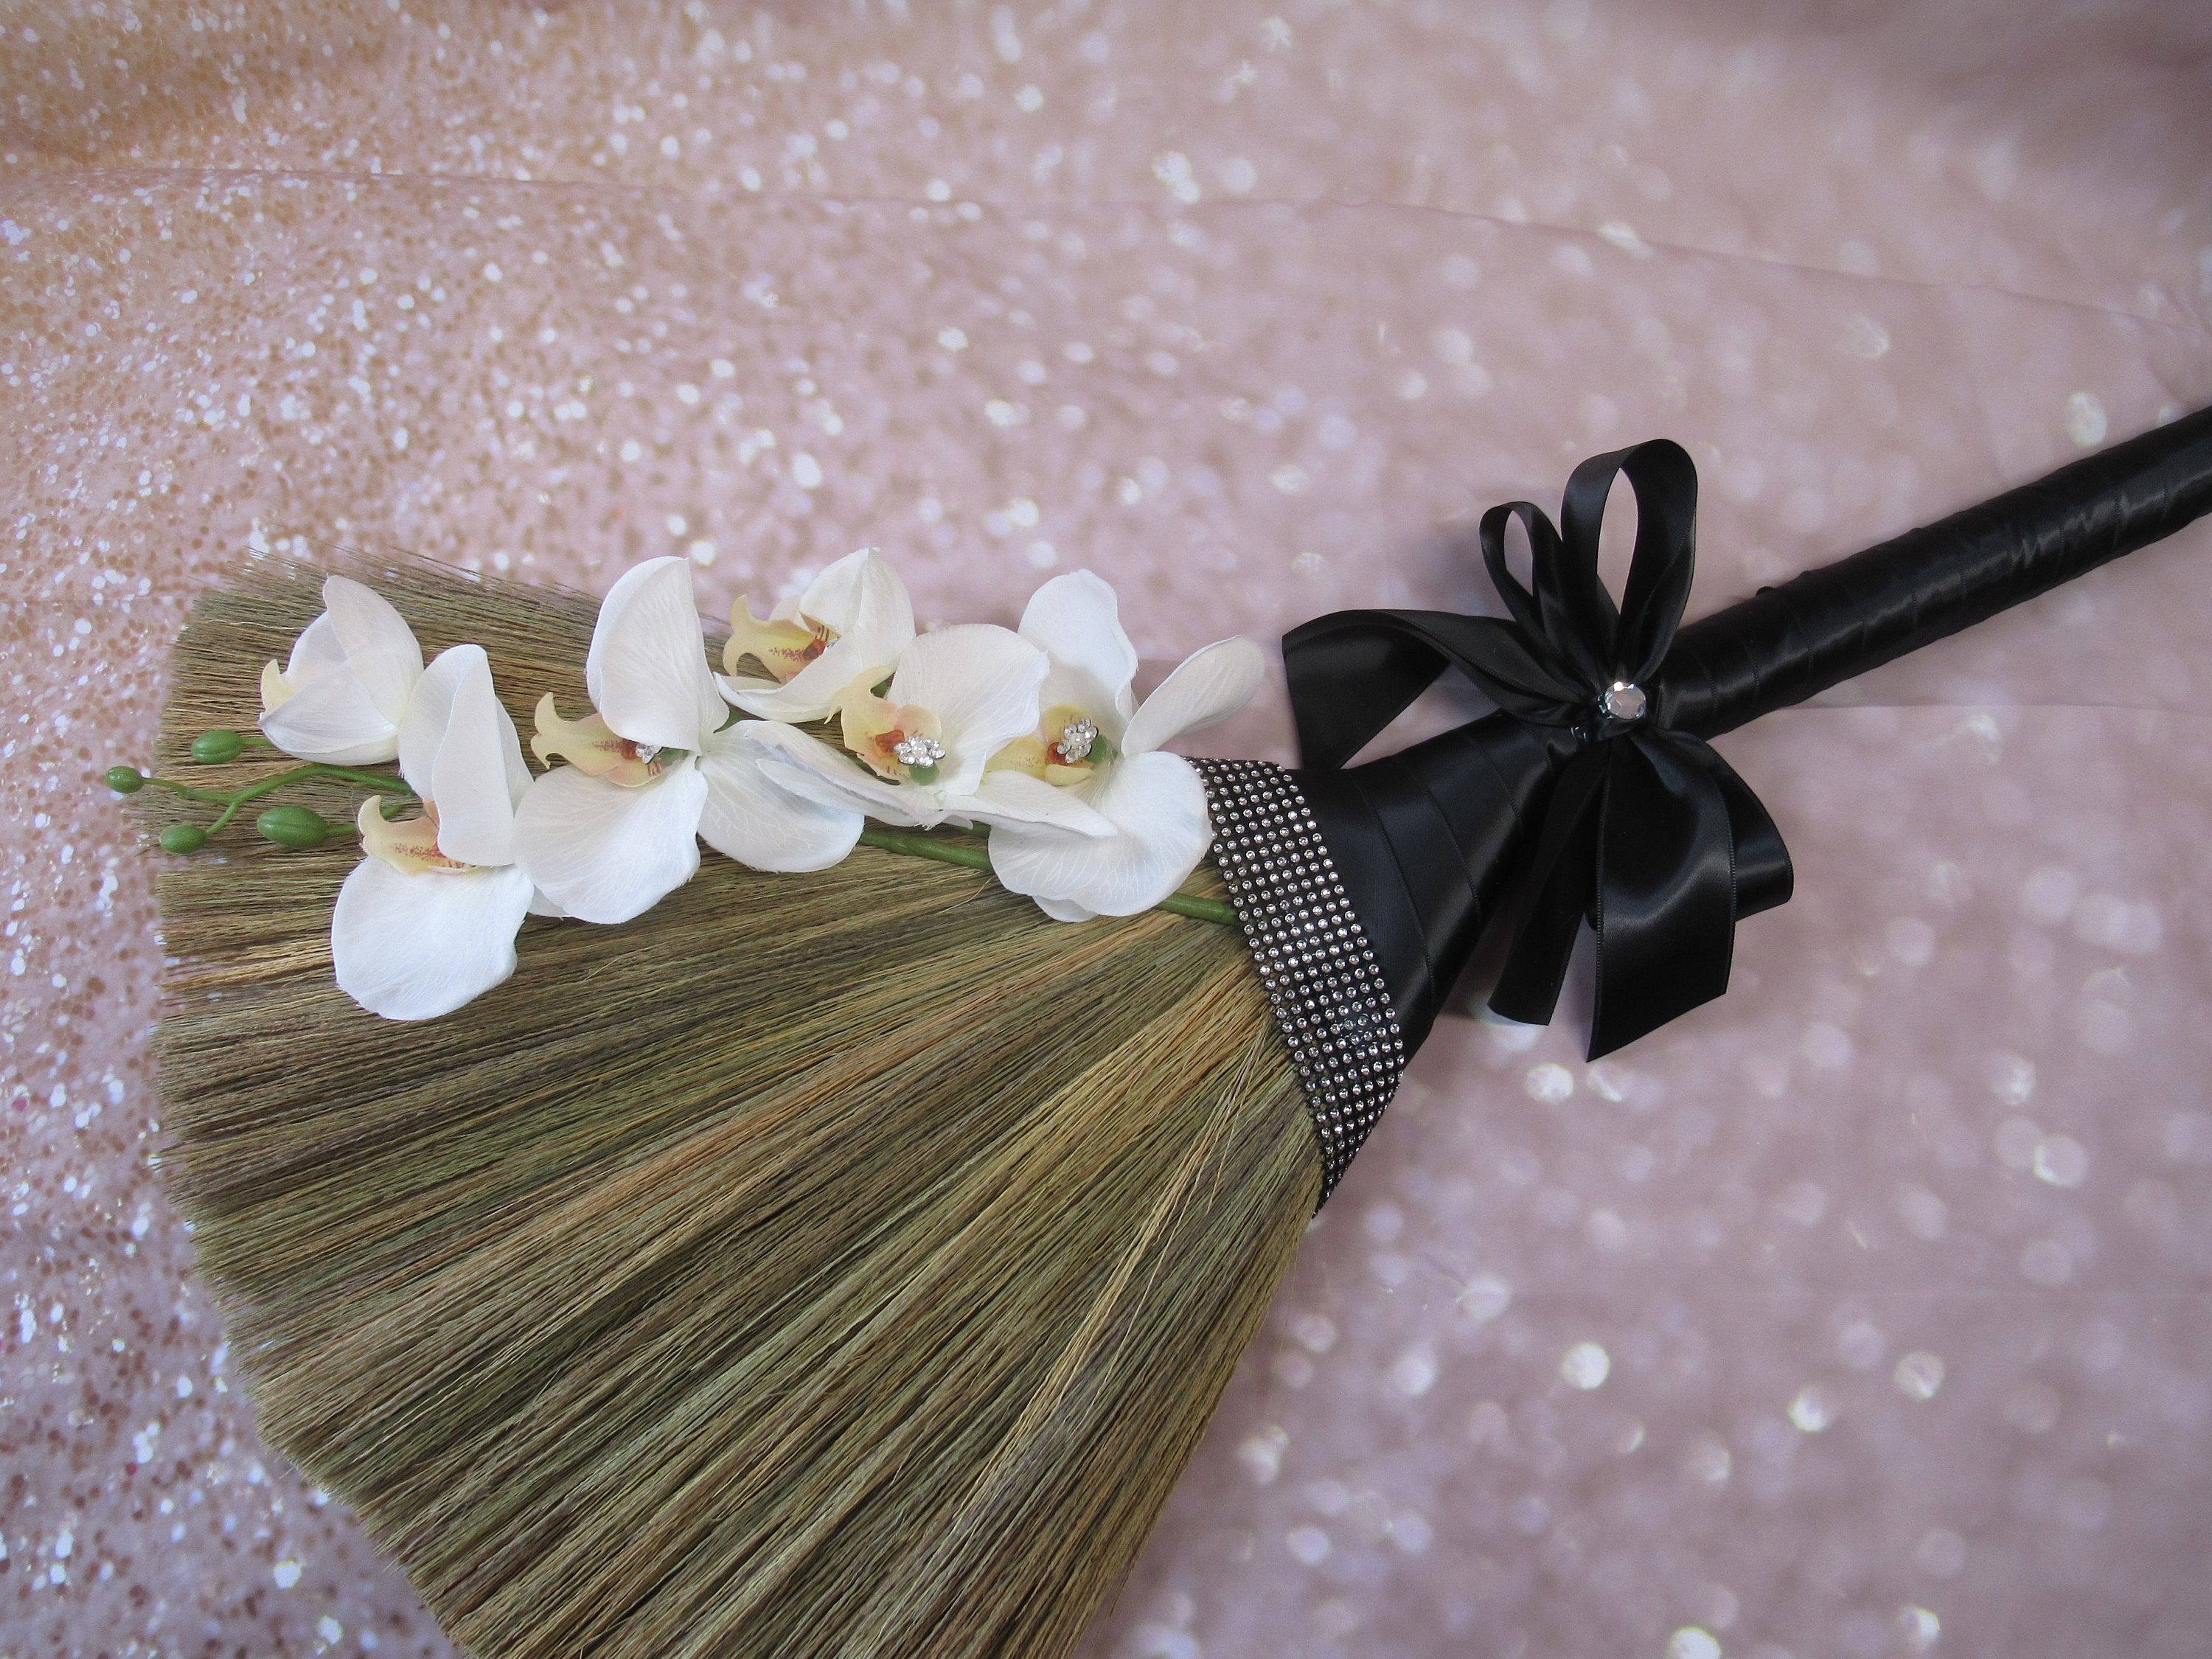 Decorated Wedding Jump Broom With Orchids With Bling For Etsy In 2020 Hand Decorated Jumping The Broom Handmade